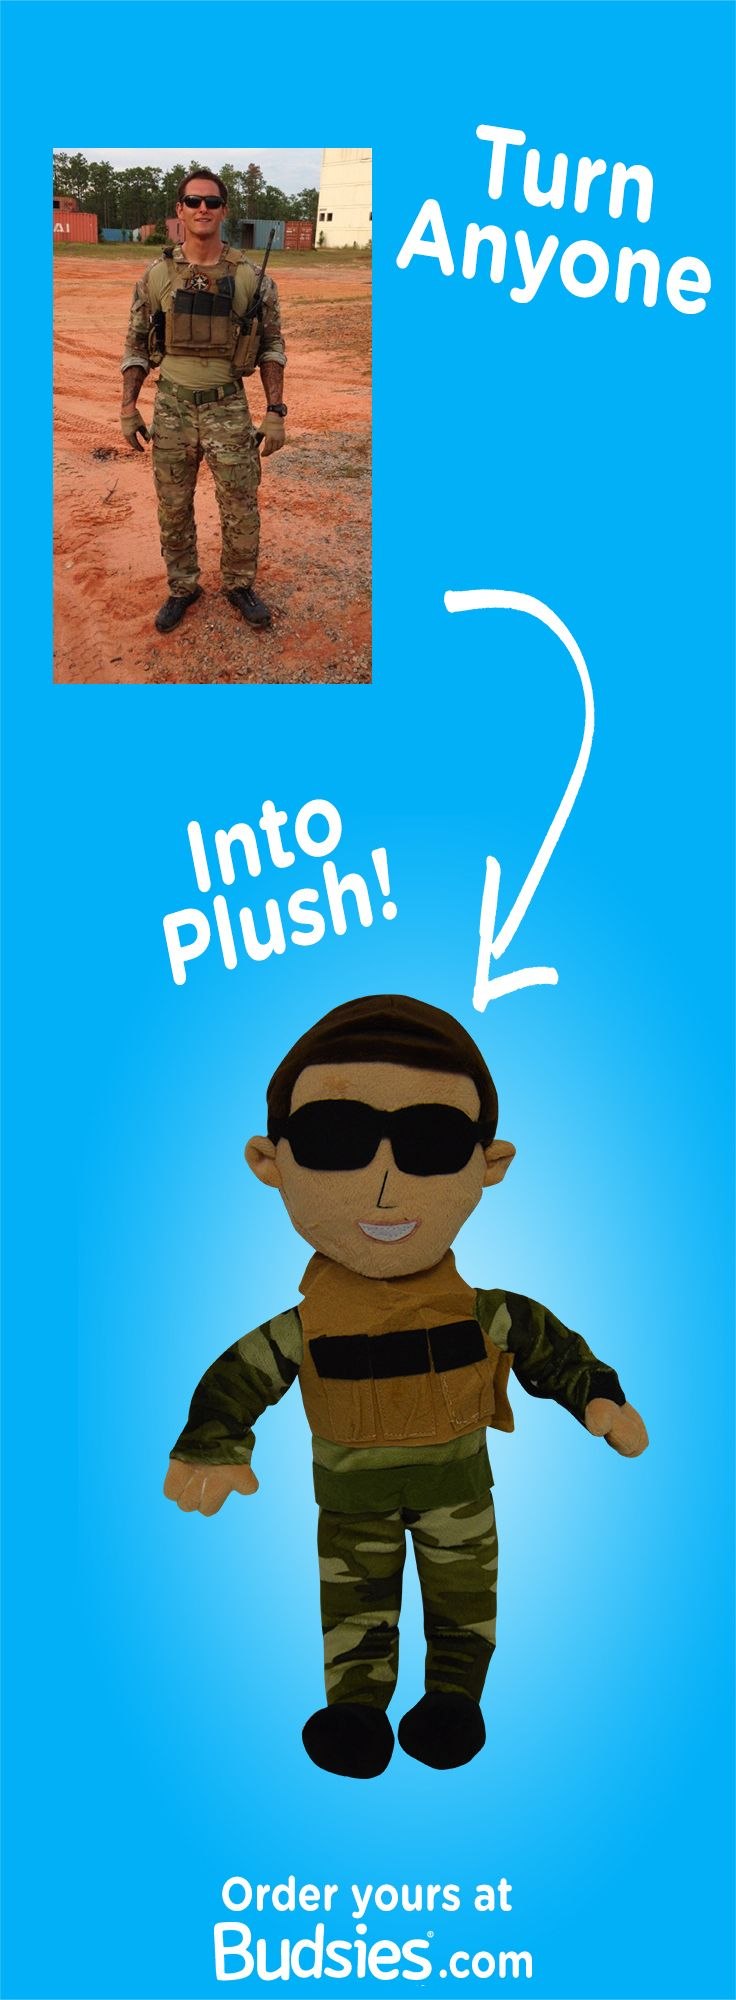 The perfect military gift for military moms, dads, husbands, wives, and children. Turn your loved ones into a custom plush doll. Just $79! Get 10% off by using MILITARYFAMILY at check out at Budsies.com